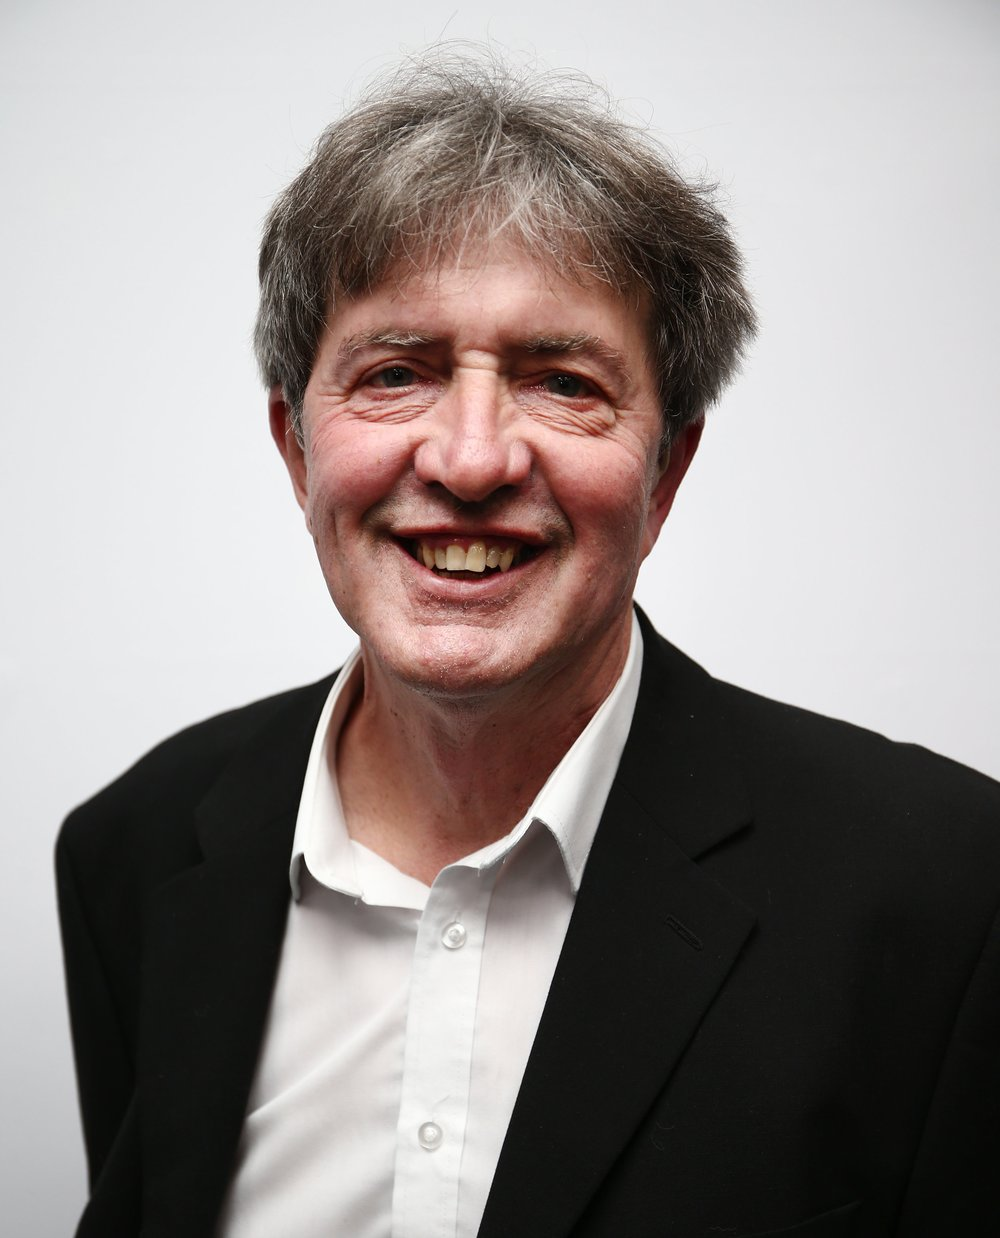 David Croot    Trustee   My name is David Croot and I am a retired primary school Headteacher. I became a trustee nearly four years ago. When asked to be a board member, I was excited by the potential of the charity to promote equality and inclusion in our communities through our links with NTFC. Whilst the trust has been through challenging times, we are now in a position where we can grow our work more widely. As part of my role and with my prior experience, I am the board of trustees' safeguarding lead.